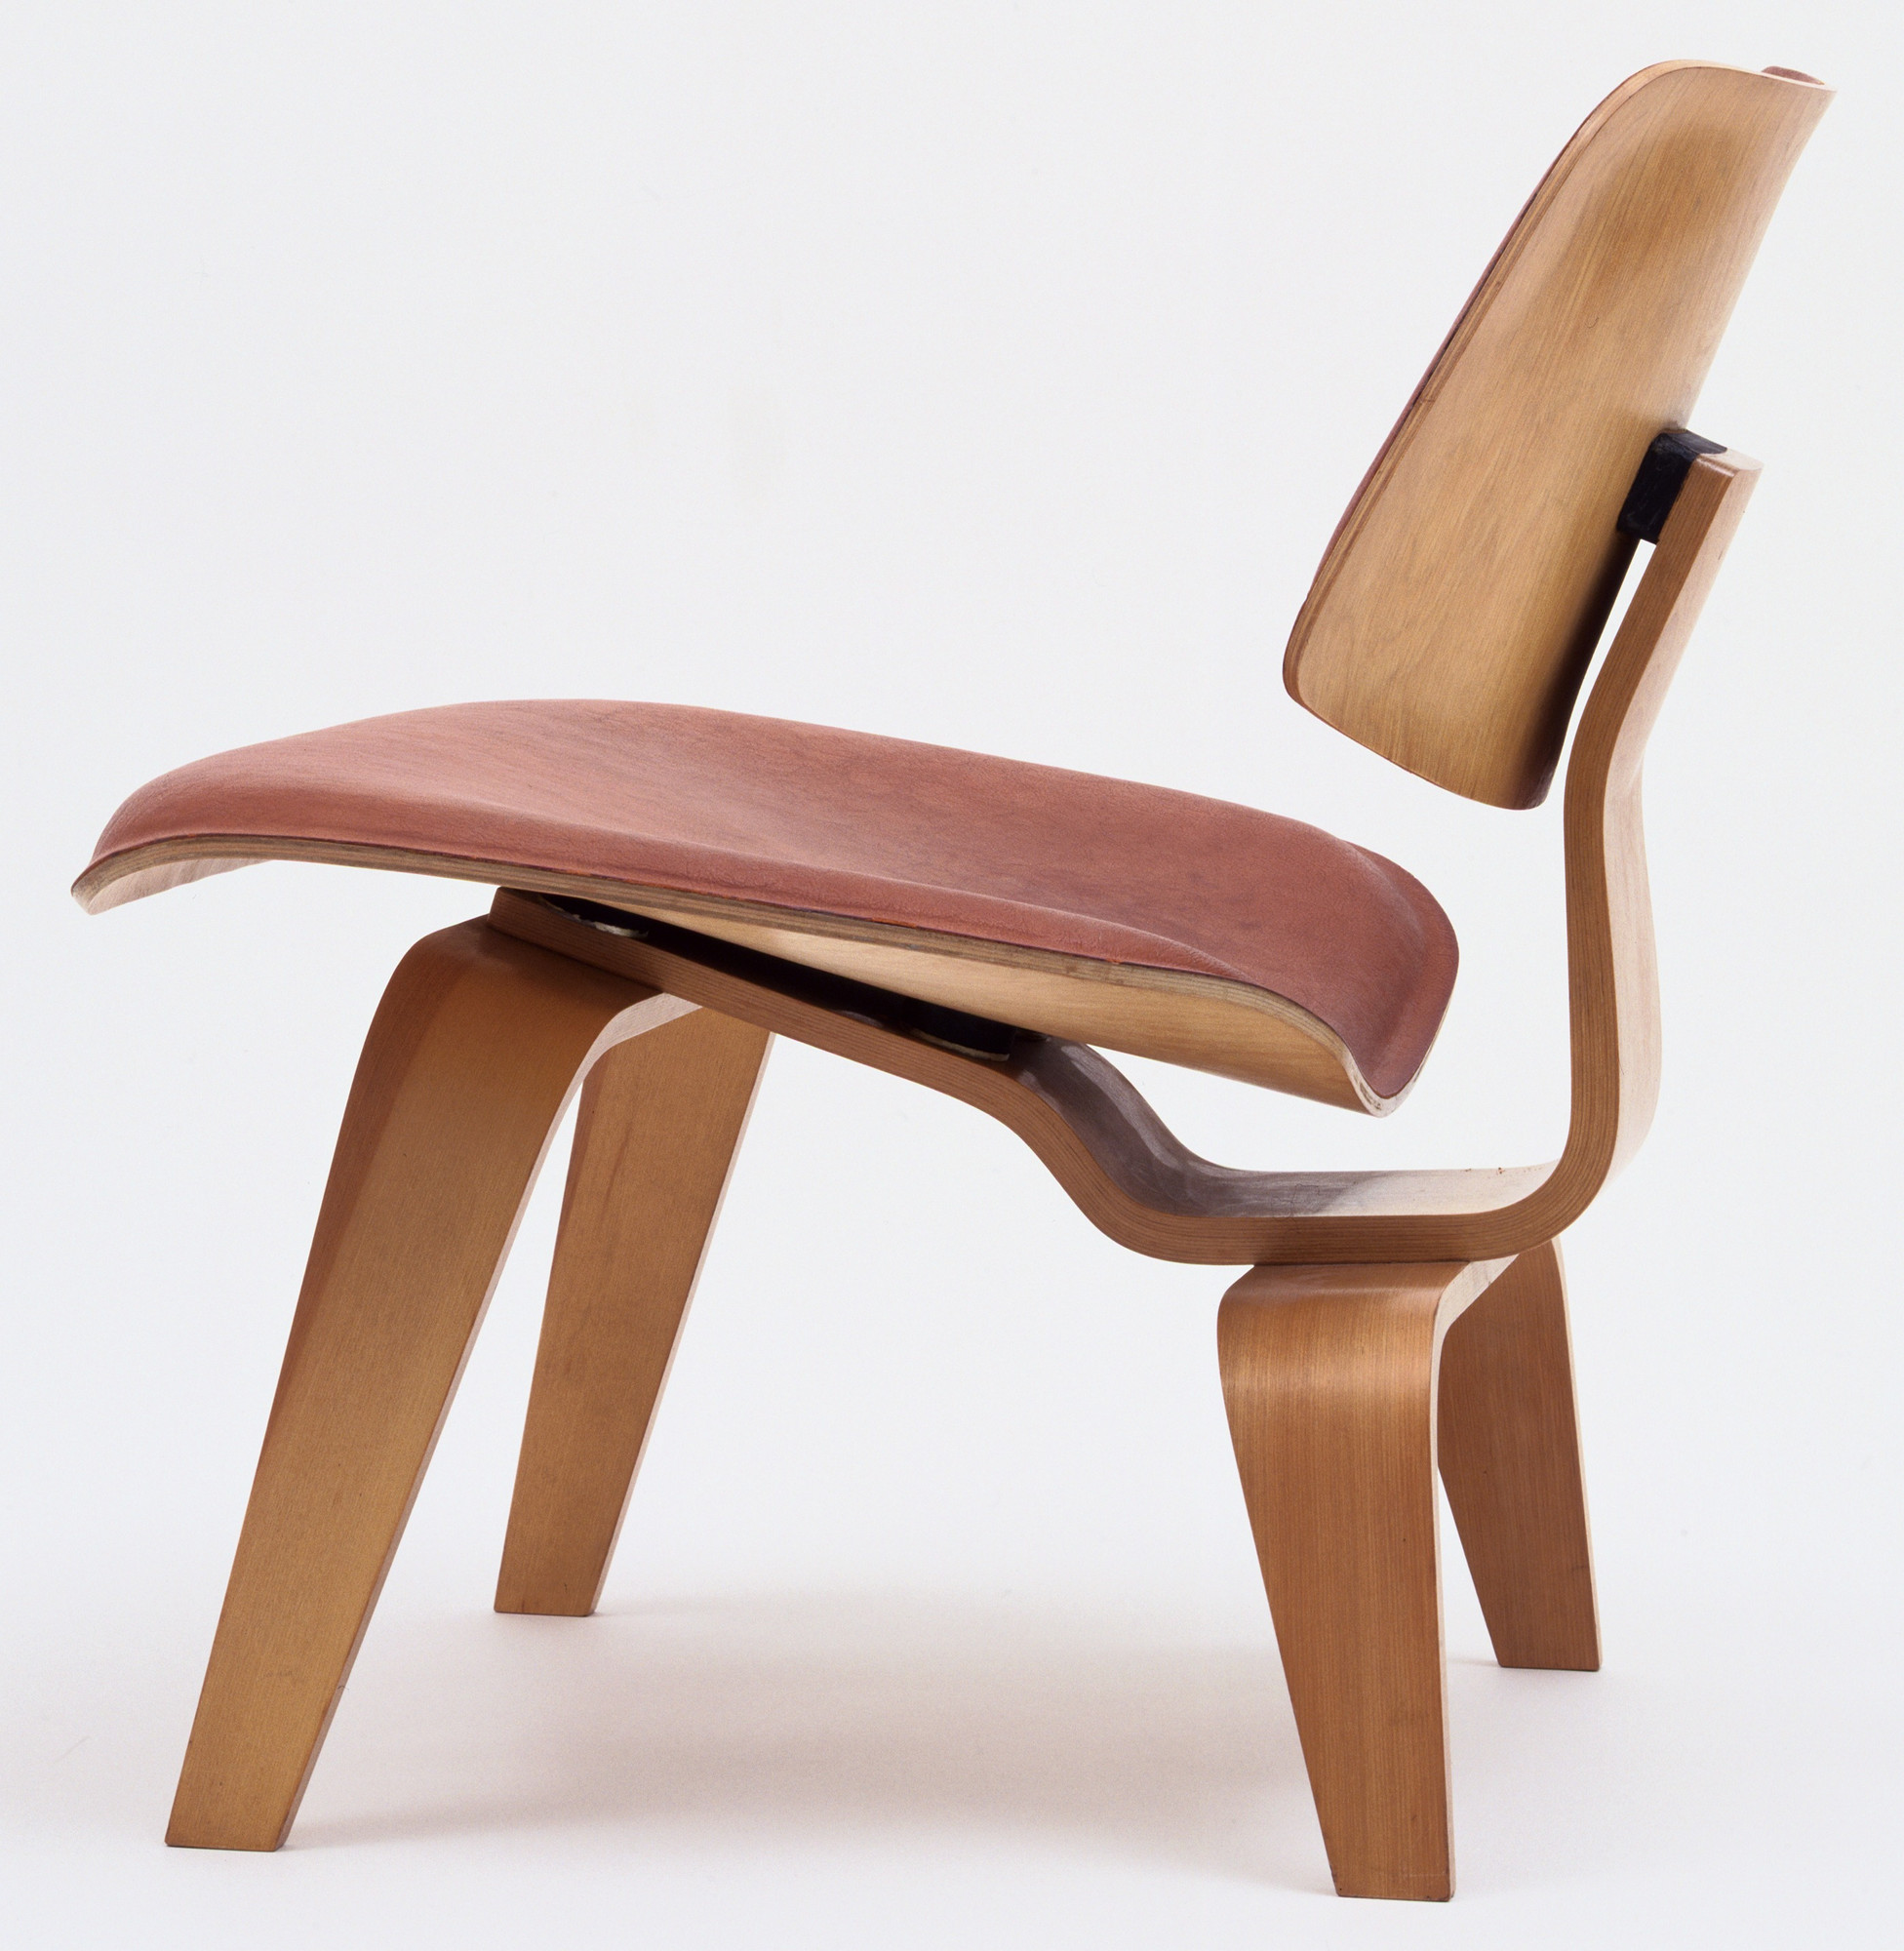 Charles Eames. Low Side Chair. c. 1946